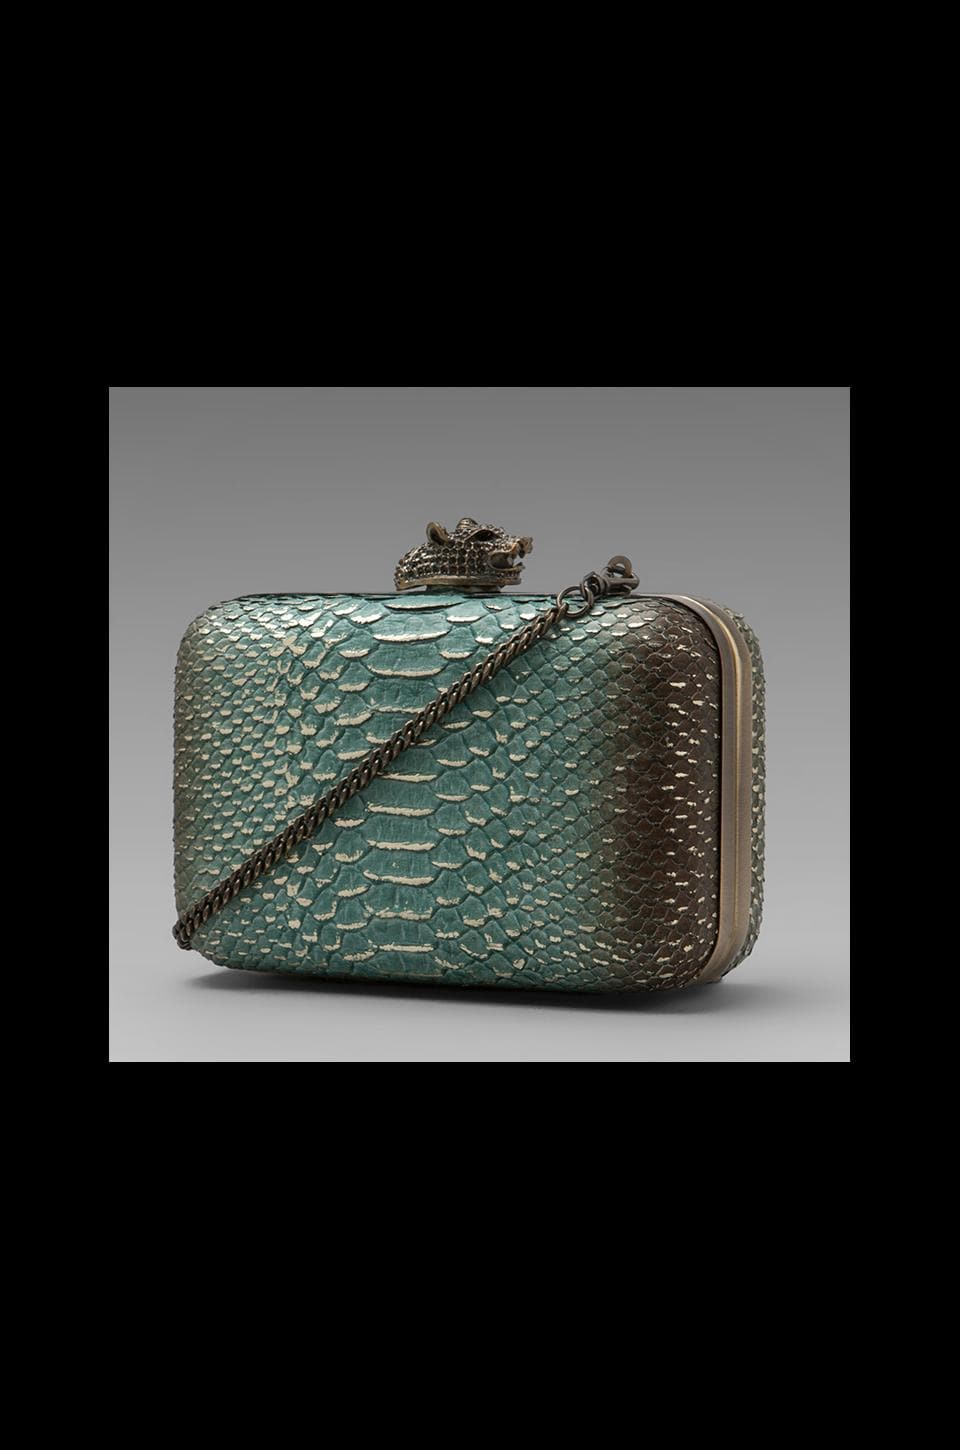 House of Harlow 1960 House of Harlow Dylan Clutch in Aqua Metallic/Brass